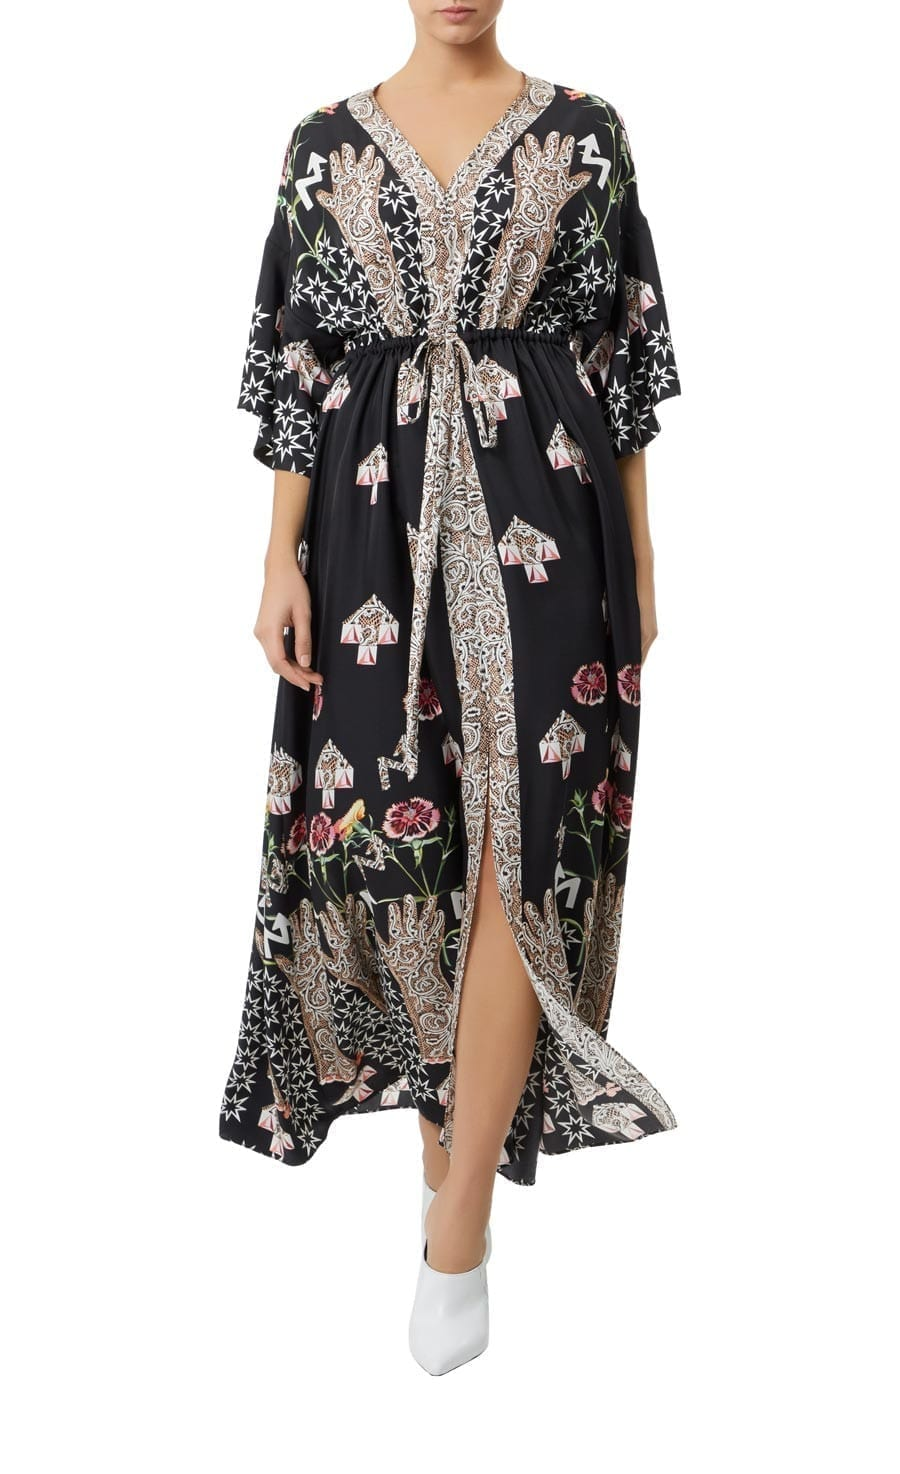 TEMPERLEY LONDON Beaumont Flux Kaftan Black Dress